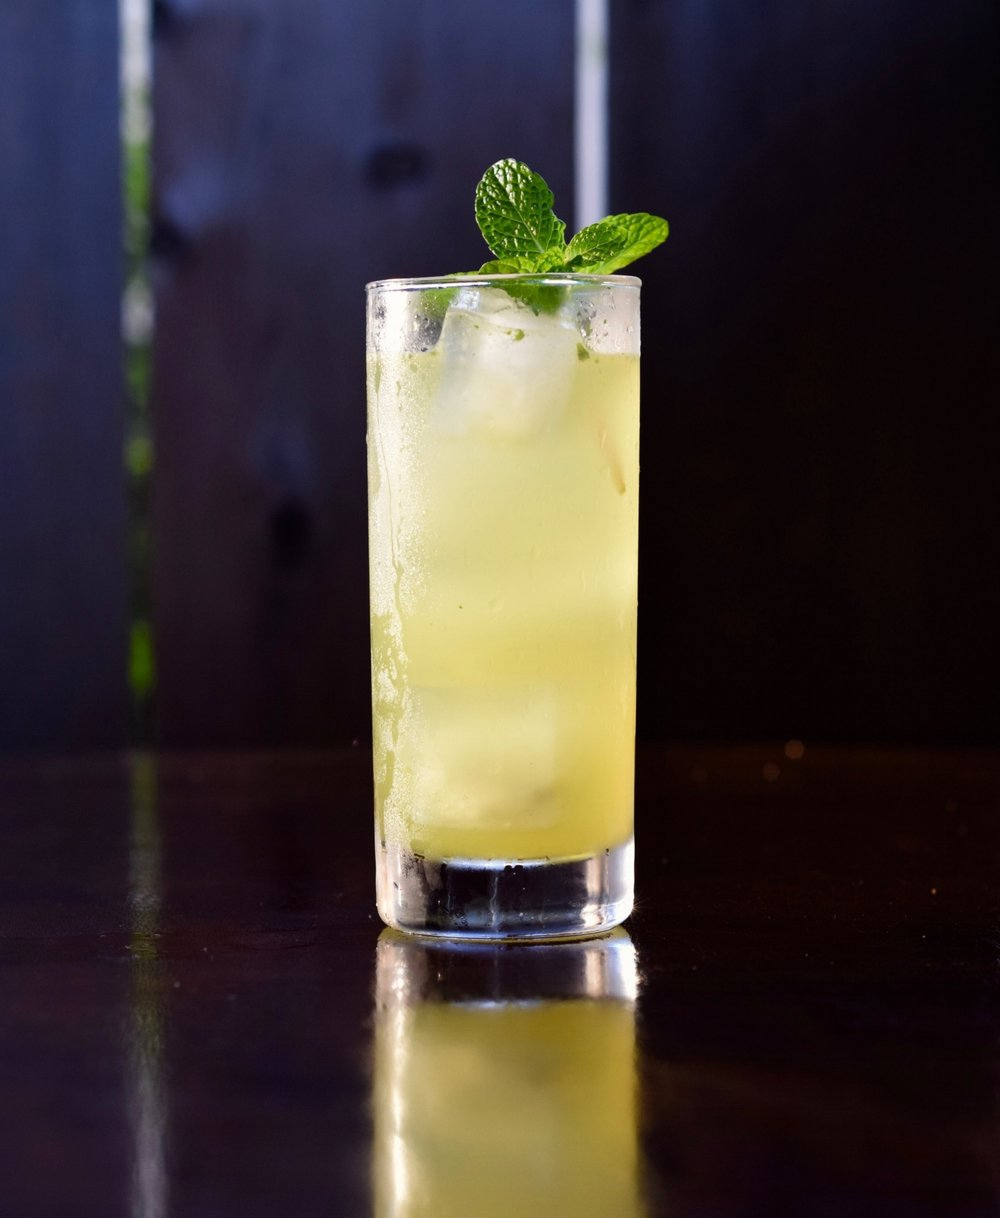 GREEN THUMB - 2 oz cachaça1 barspoon absinthe1/2 oz nostrum pineapple turmeric ginger shrub1/2 oz fresh lime juice1/2 oz simple syrup6-8 mint leavessoda waterdirections: shake everything except soda water. strain over fresh ice and top with soda.